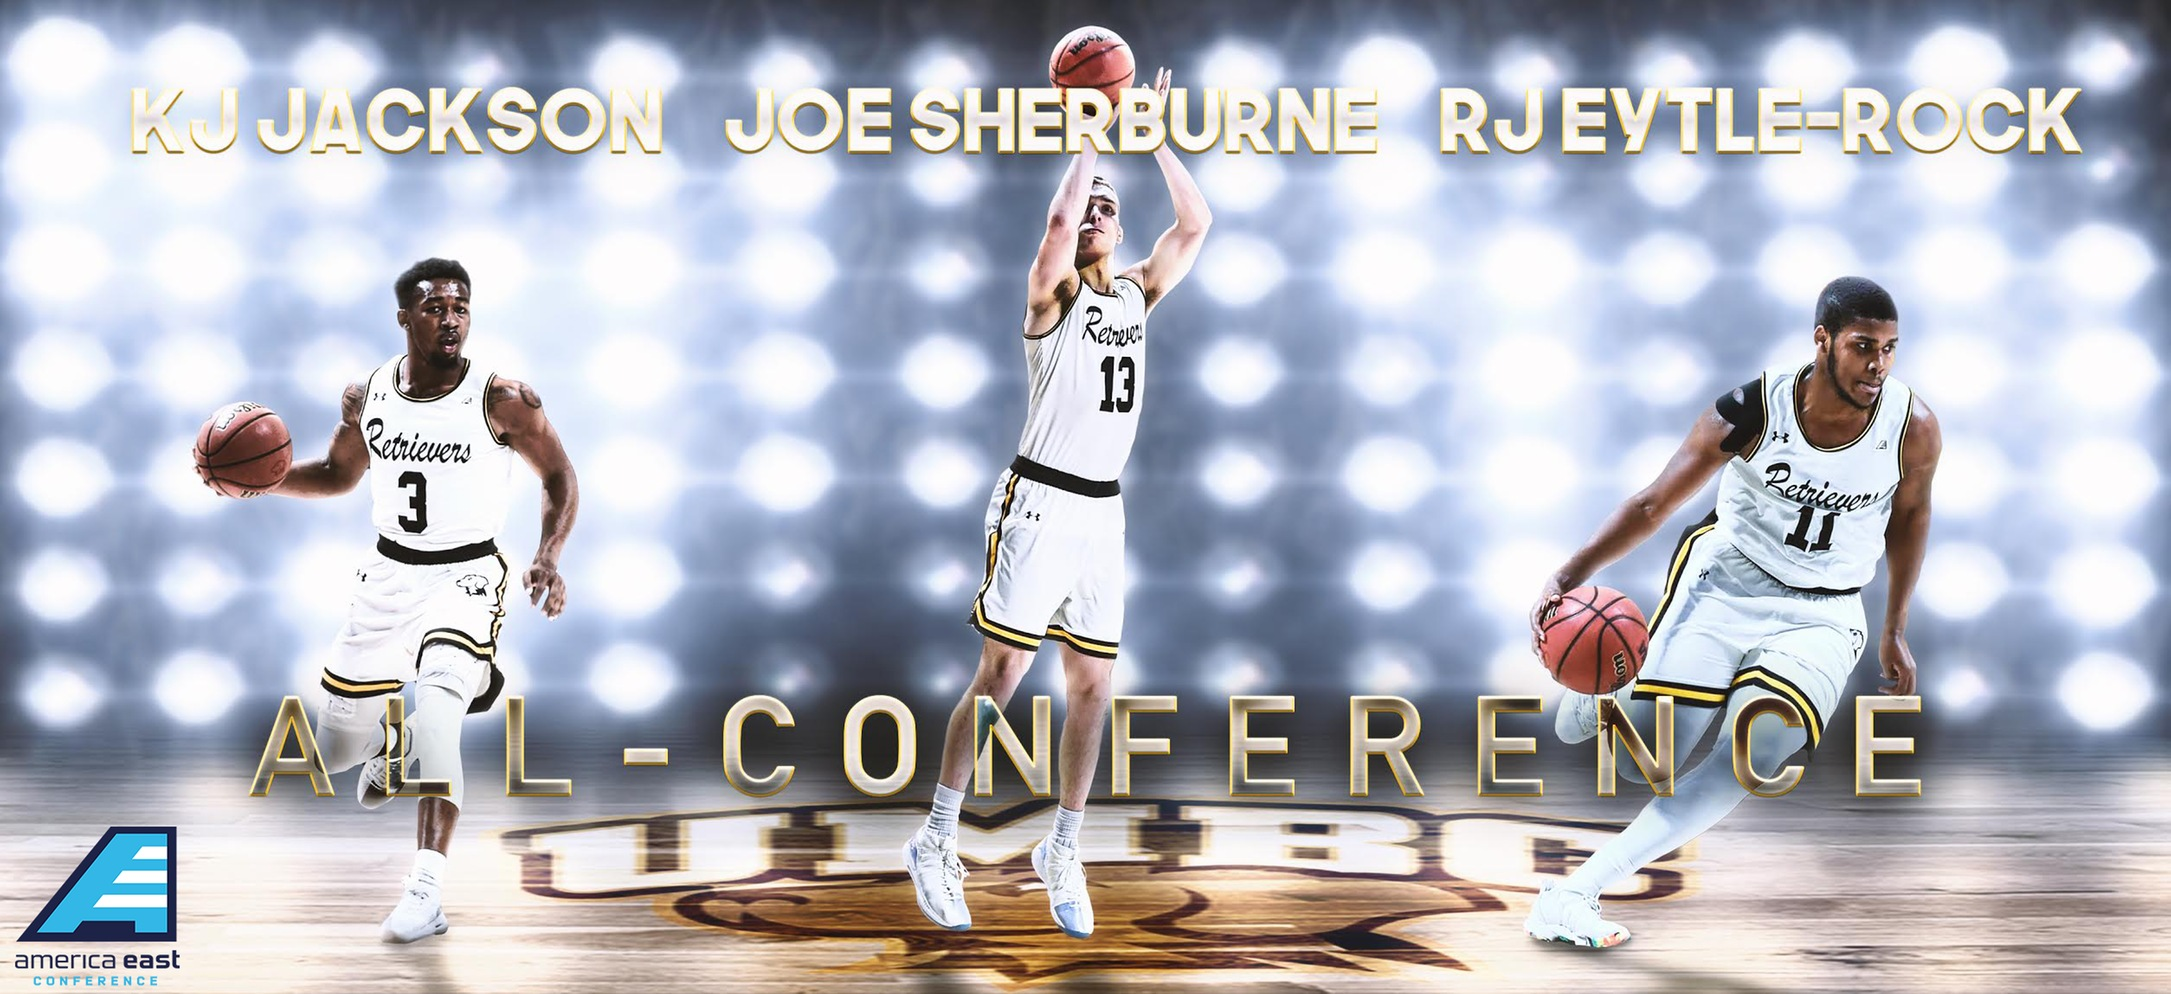 Sherburne Leads Trio Named to All-Conference Teams; Retrievers Host Great Danes in #AE Playoffs on Saturday Afternoon